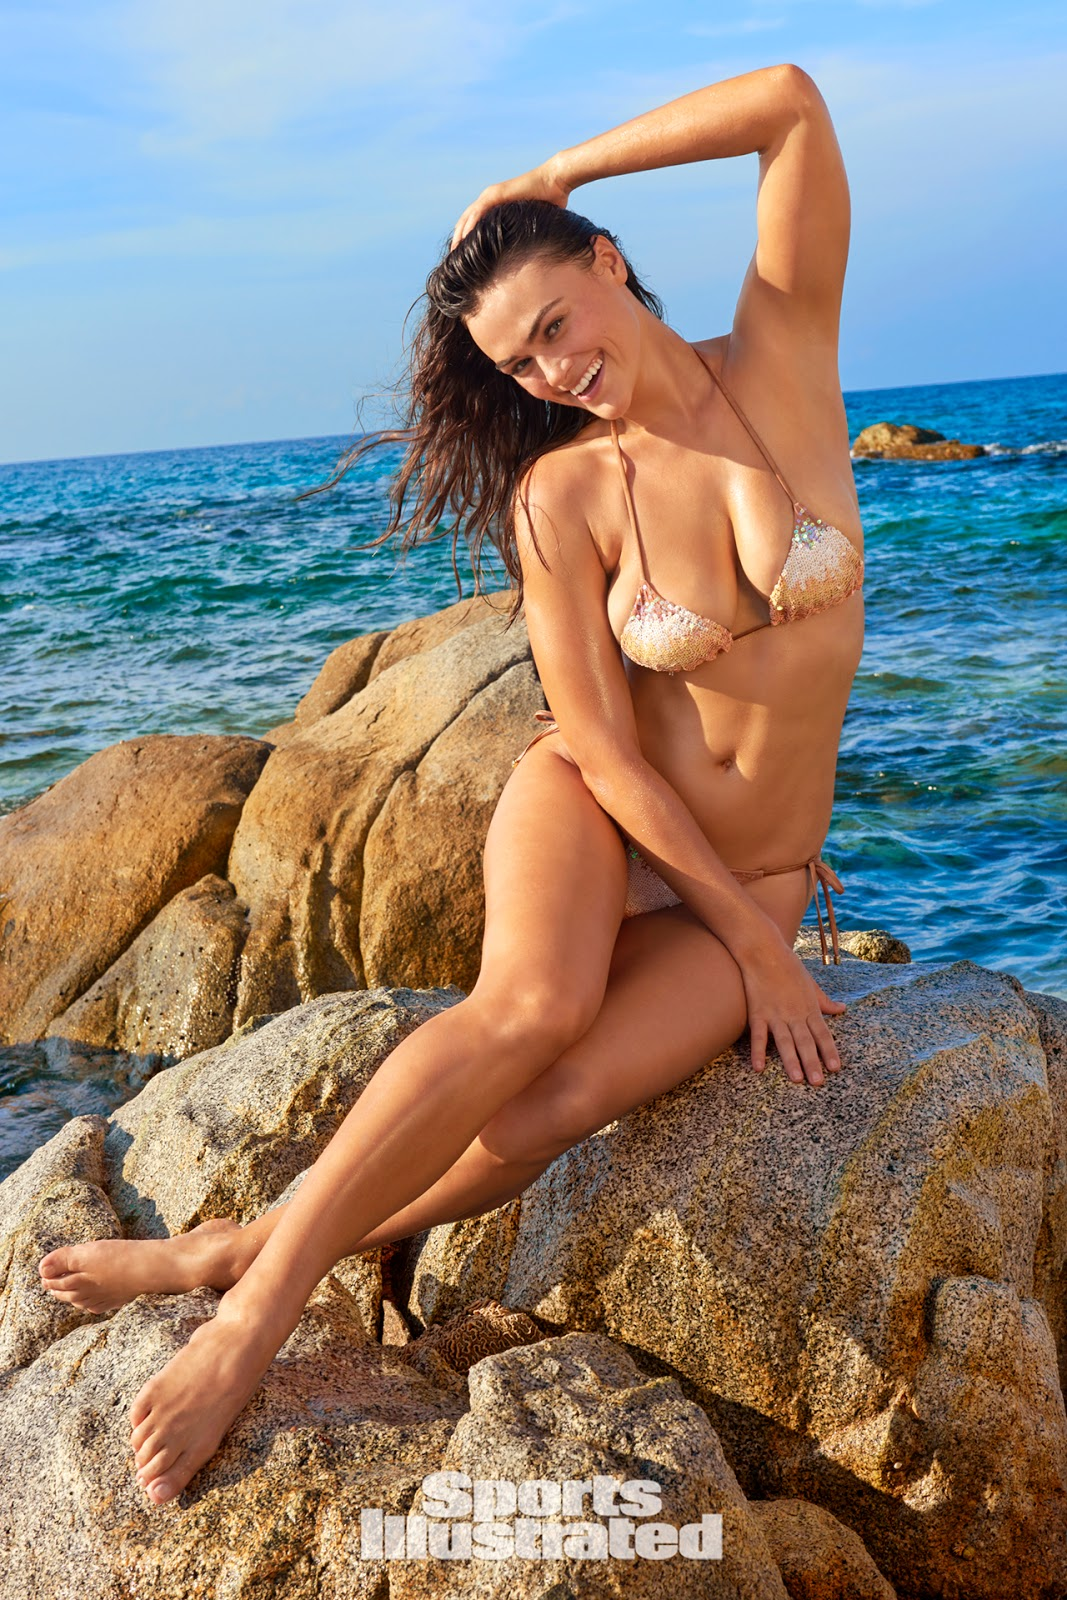 Myla Dalbesio was photographed by Yu Tsai in Aruba